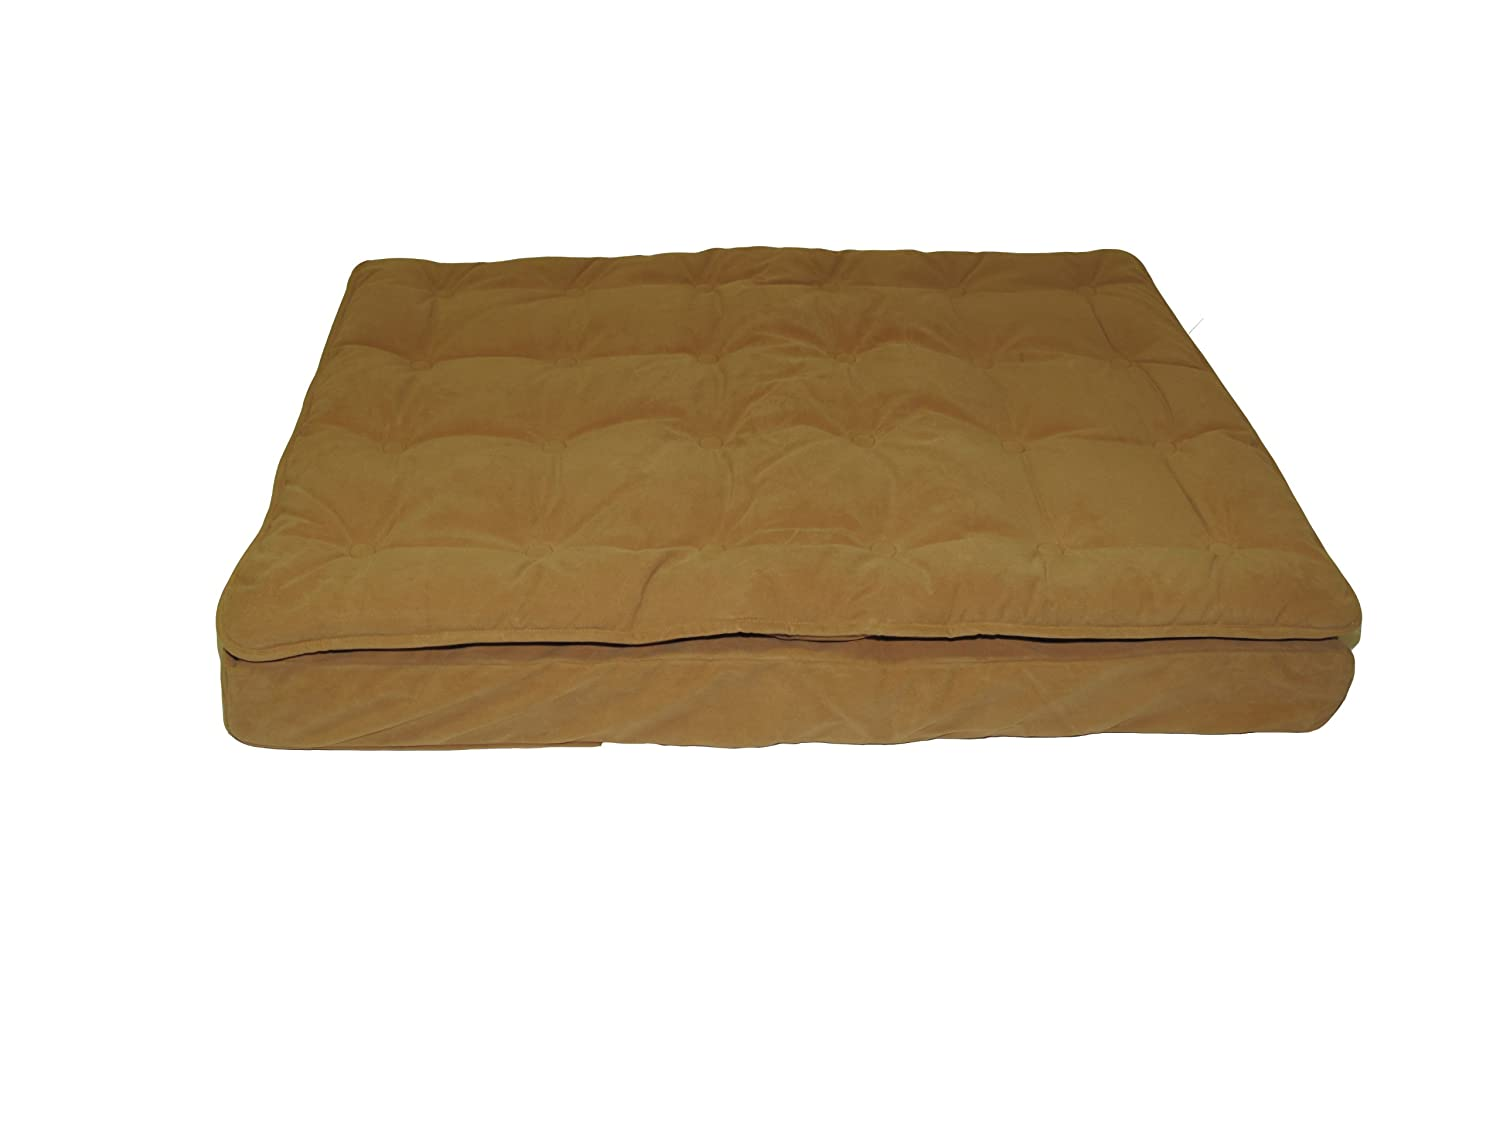 Caramel 27 by 36 by 4 Caramel 27 by 36 by 4 CPC Luxury Pillow Medium Top Mattress Pet Bed, Caramel